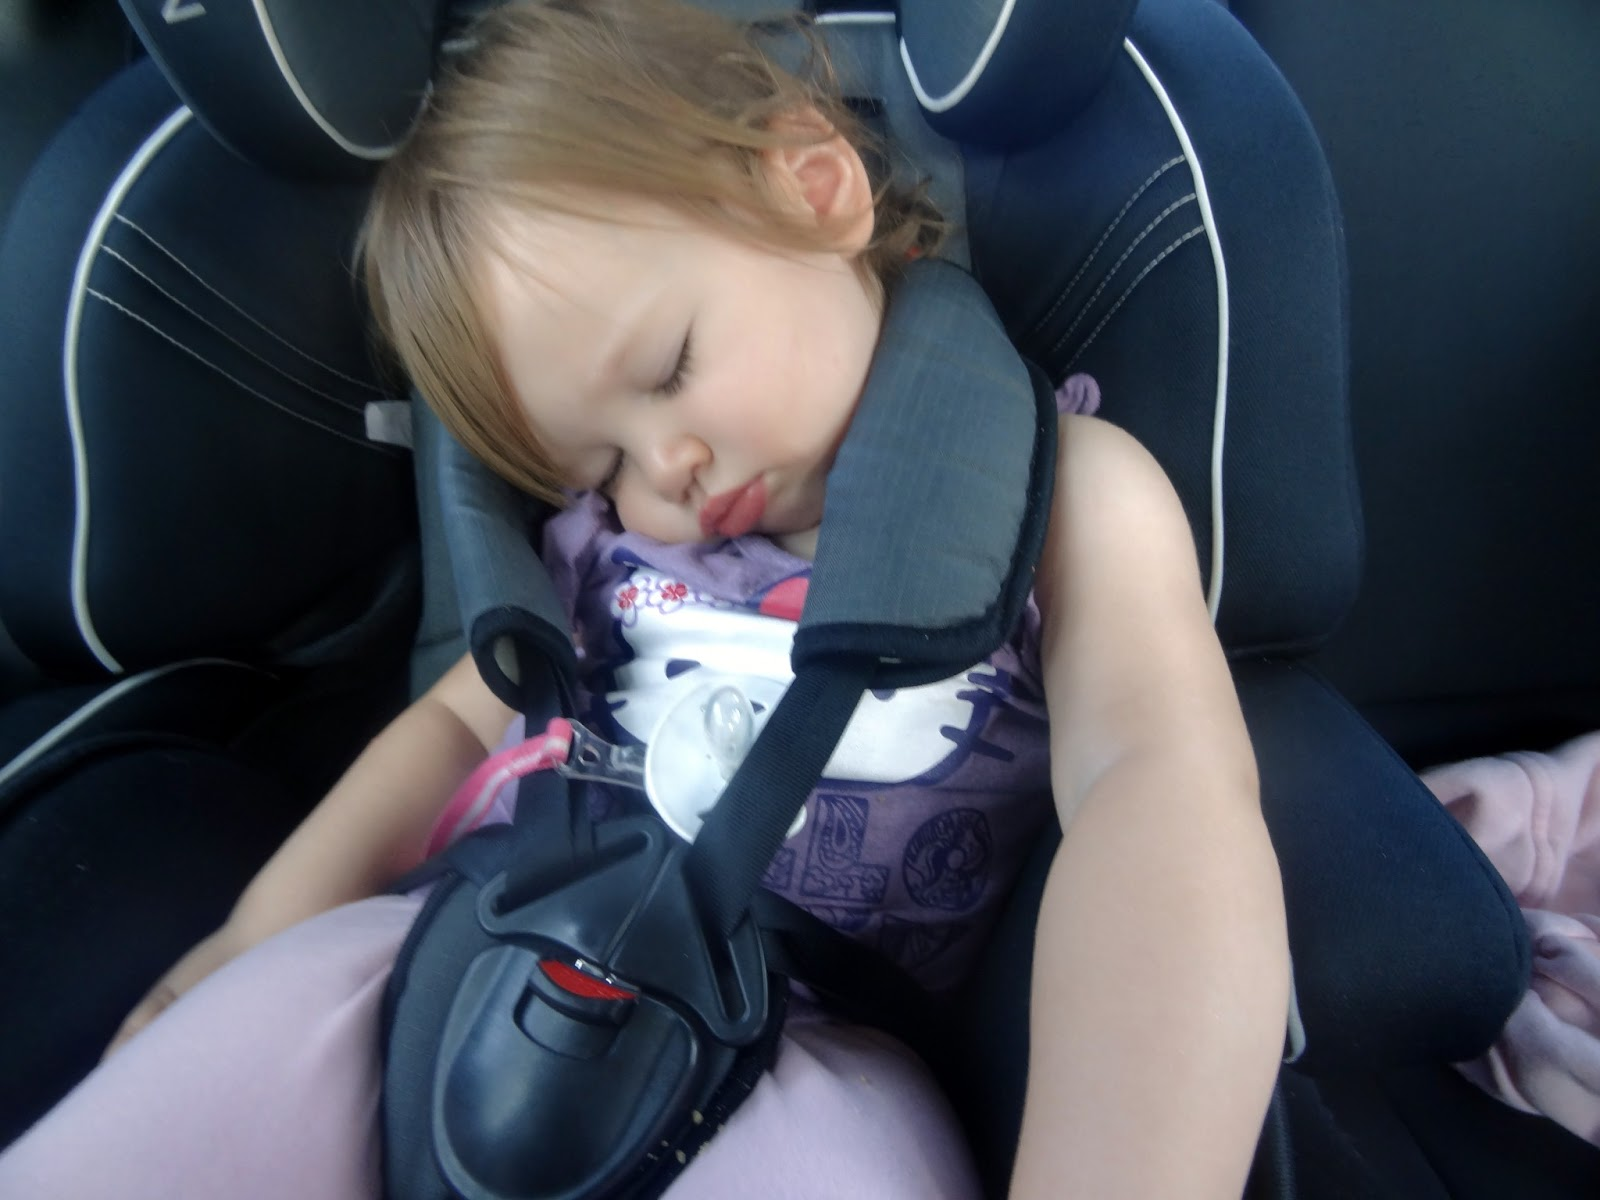 A Day in the Life of Calleigh Emma: Our Florida Trip: The Journey Down